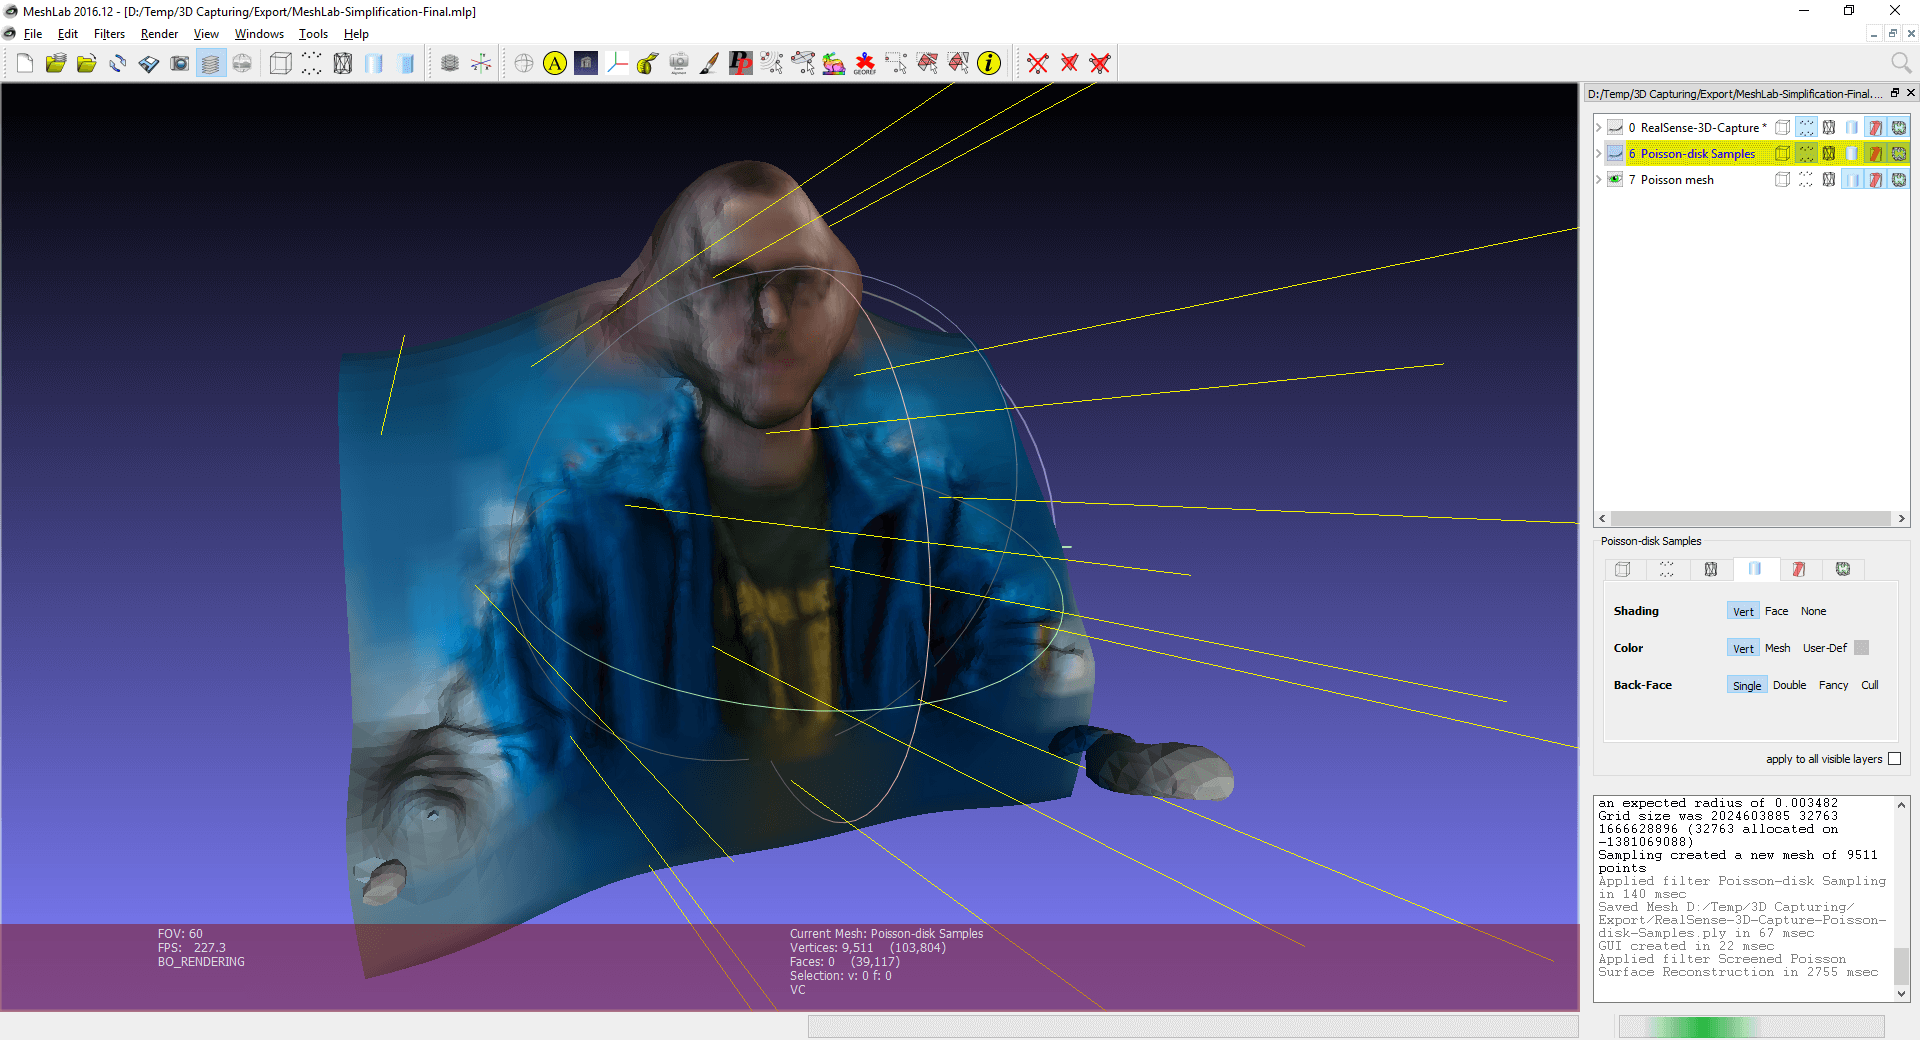 Capturing a 3D Point Cloud with Intel RealSense and